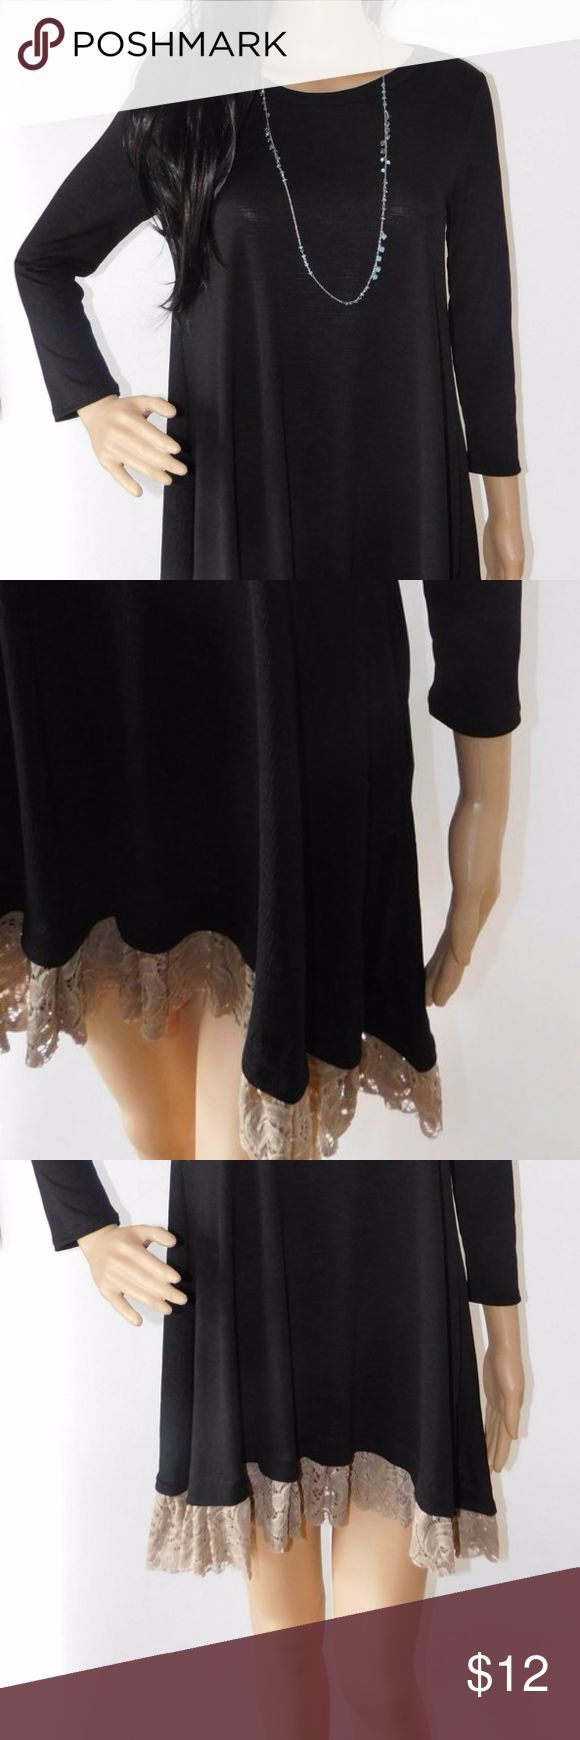 "Black Tunic Dress with Brown Lace Trim - Small 92% Polyester, 8% Spandex  Black tunic dress with brown lace trim. Necklace is not included. Mannequin is 6 ft. tall. Depending on how tall you are will determine the length. Would look great with a pair of leggings!  Size Small (1 available) Bust: 32"" Dresses Mini"